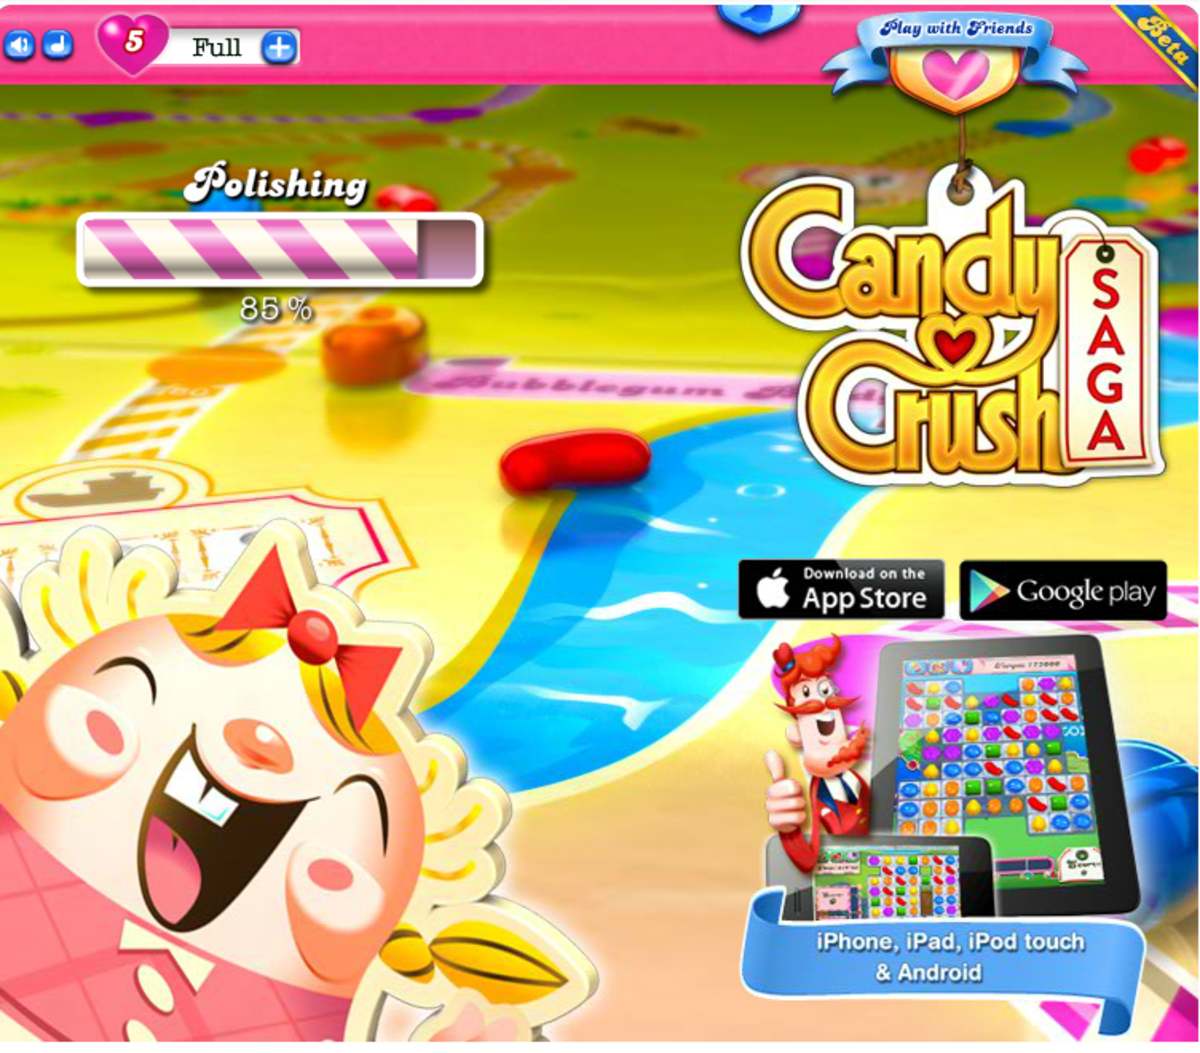 As you can see from my loading screen of Candy Crush Saga, I already have a full quota of lives, the next scrren after loading will offer me more lives from my friends which I would normally lose.